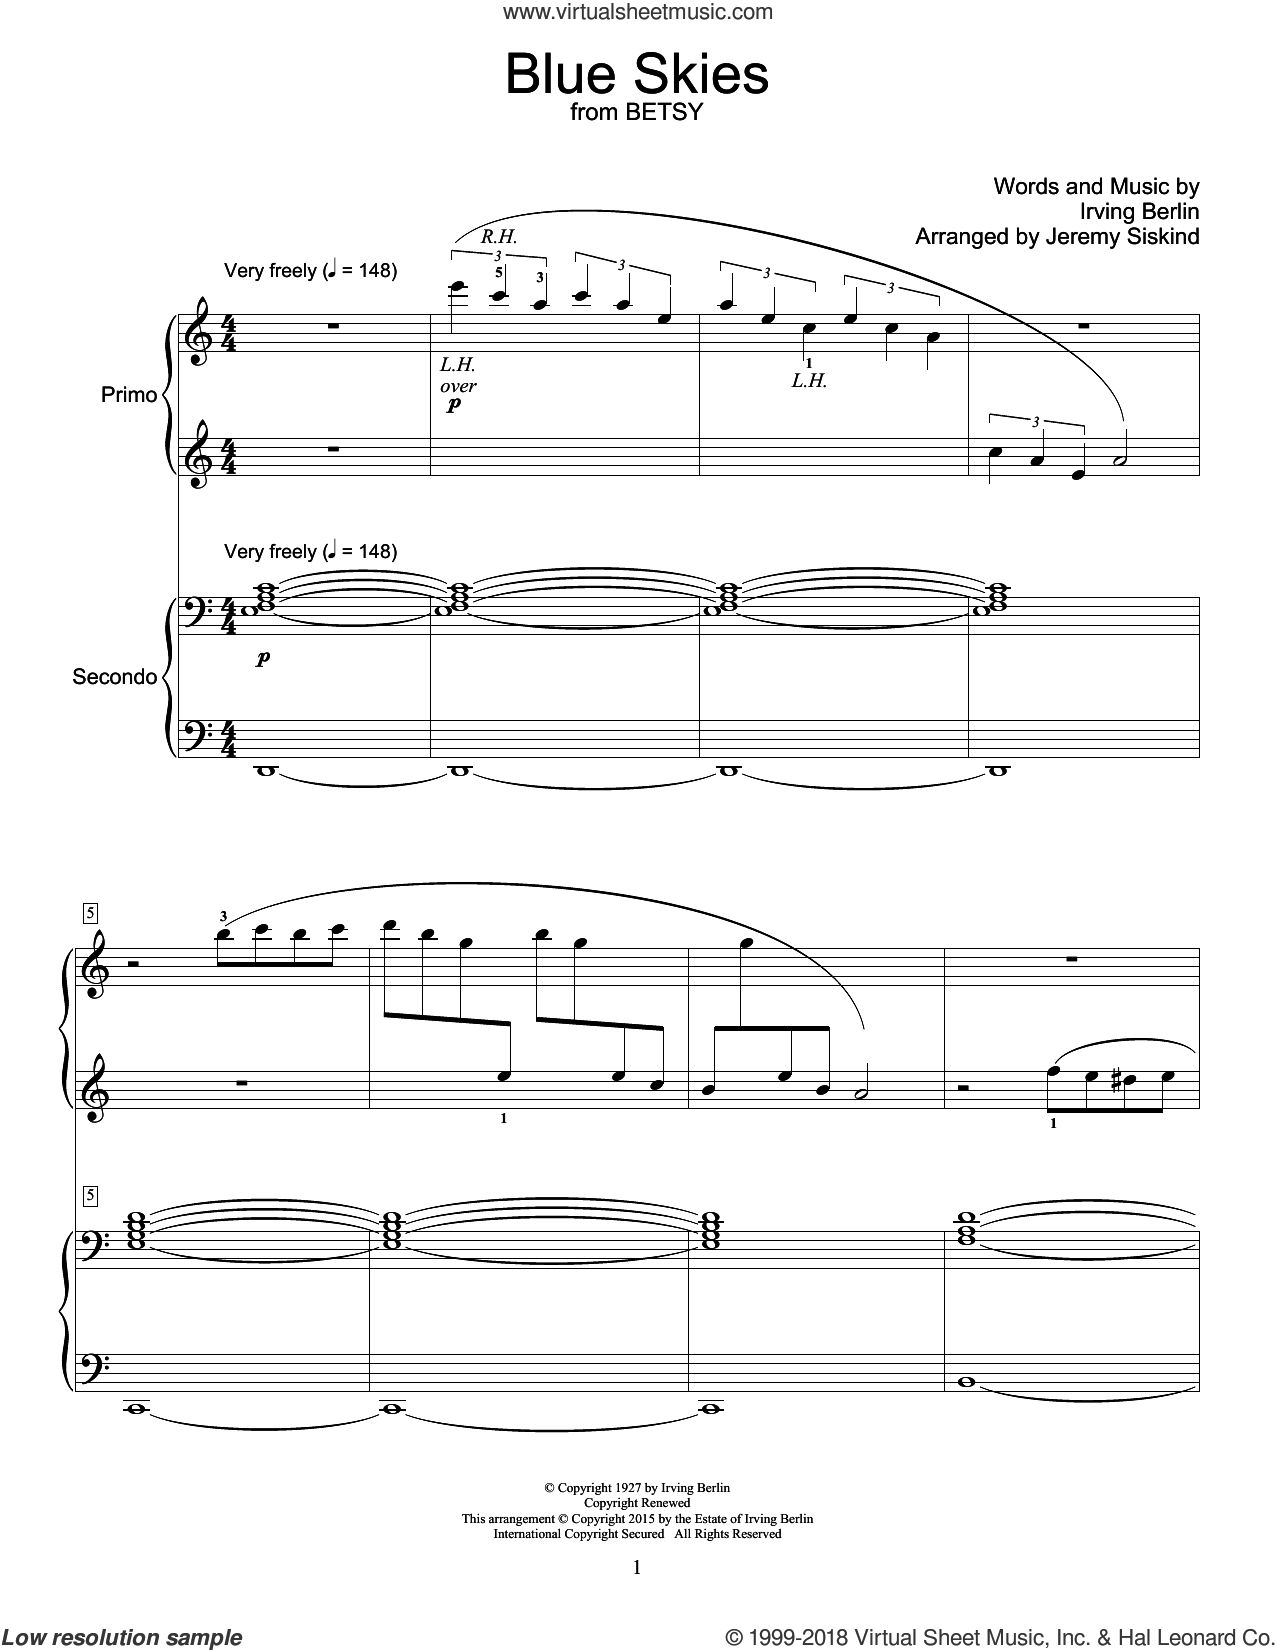 Blue Skies sheet music for piano four hands by Irving Berlin and Willie Nelson, intermediate skill level